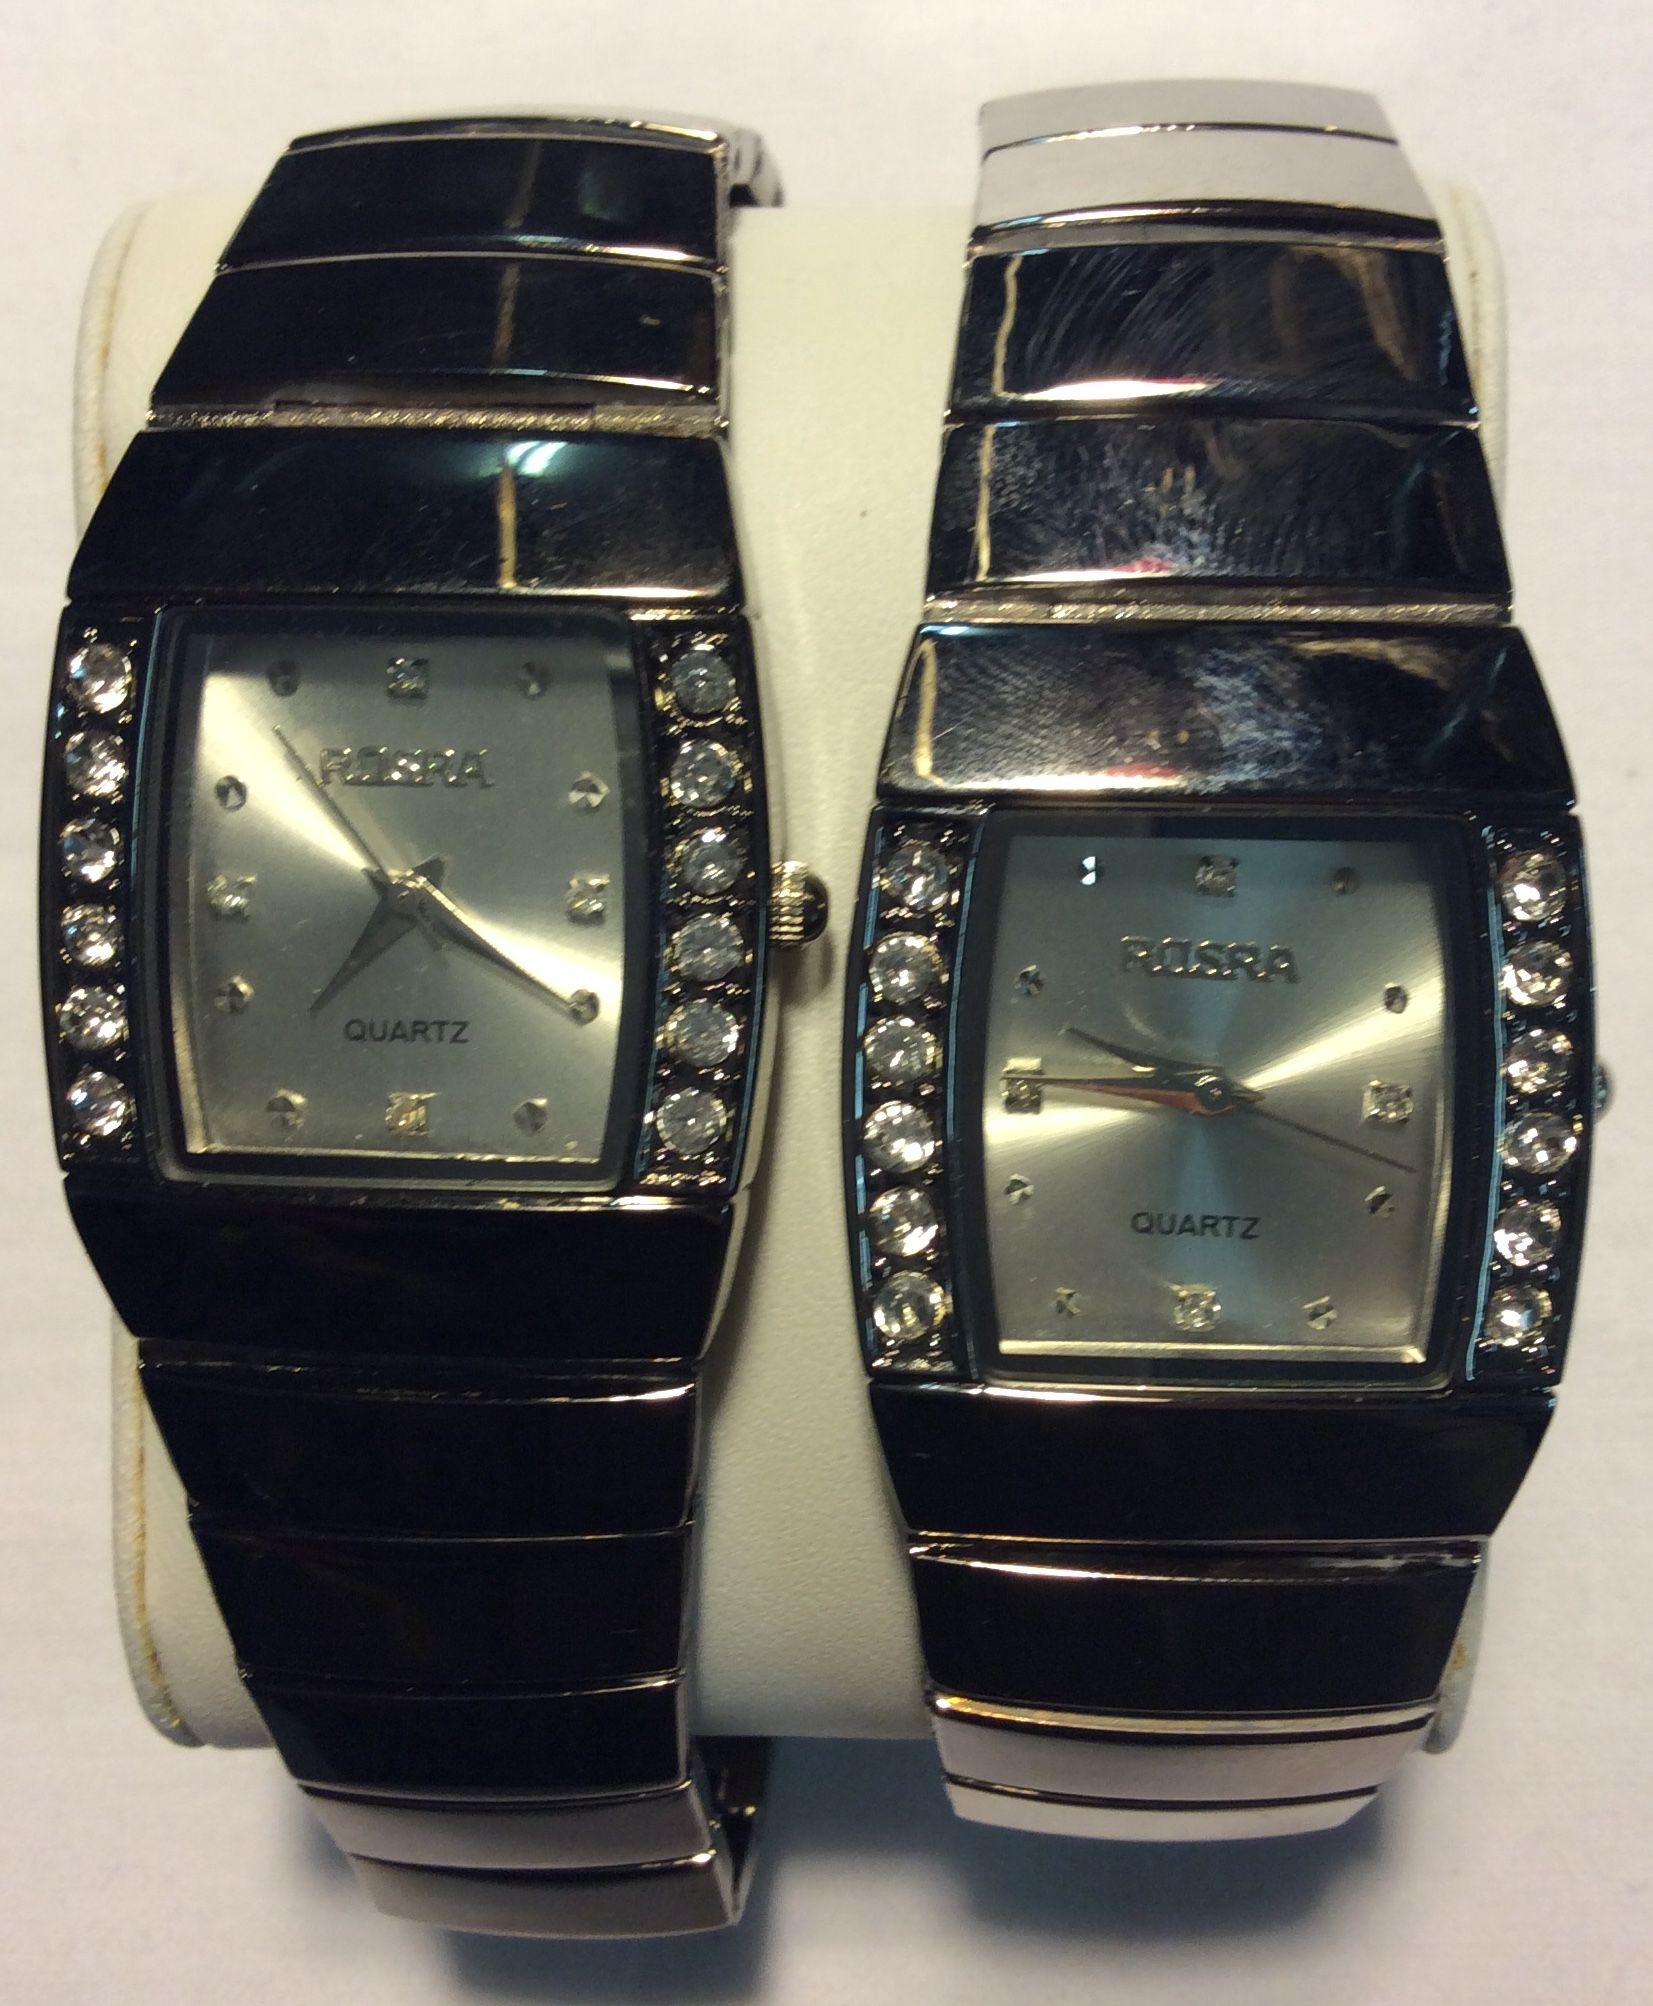 Rosra watch - square silver face